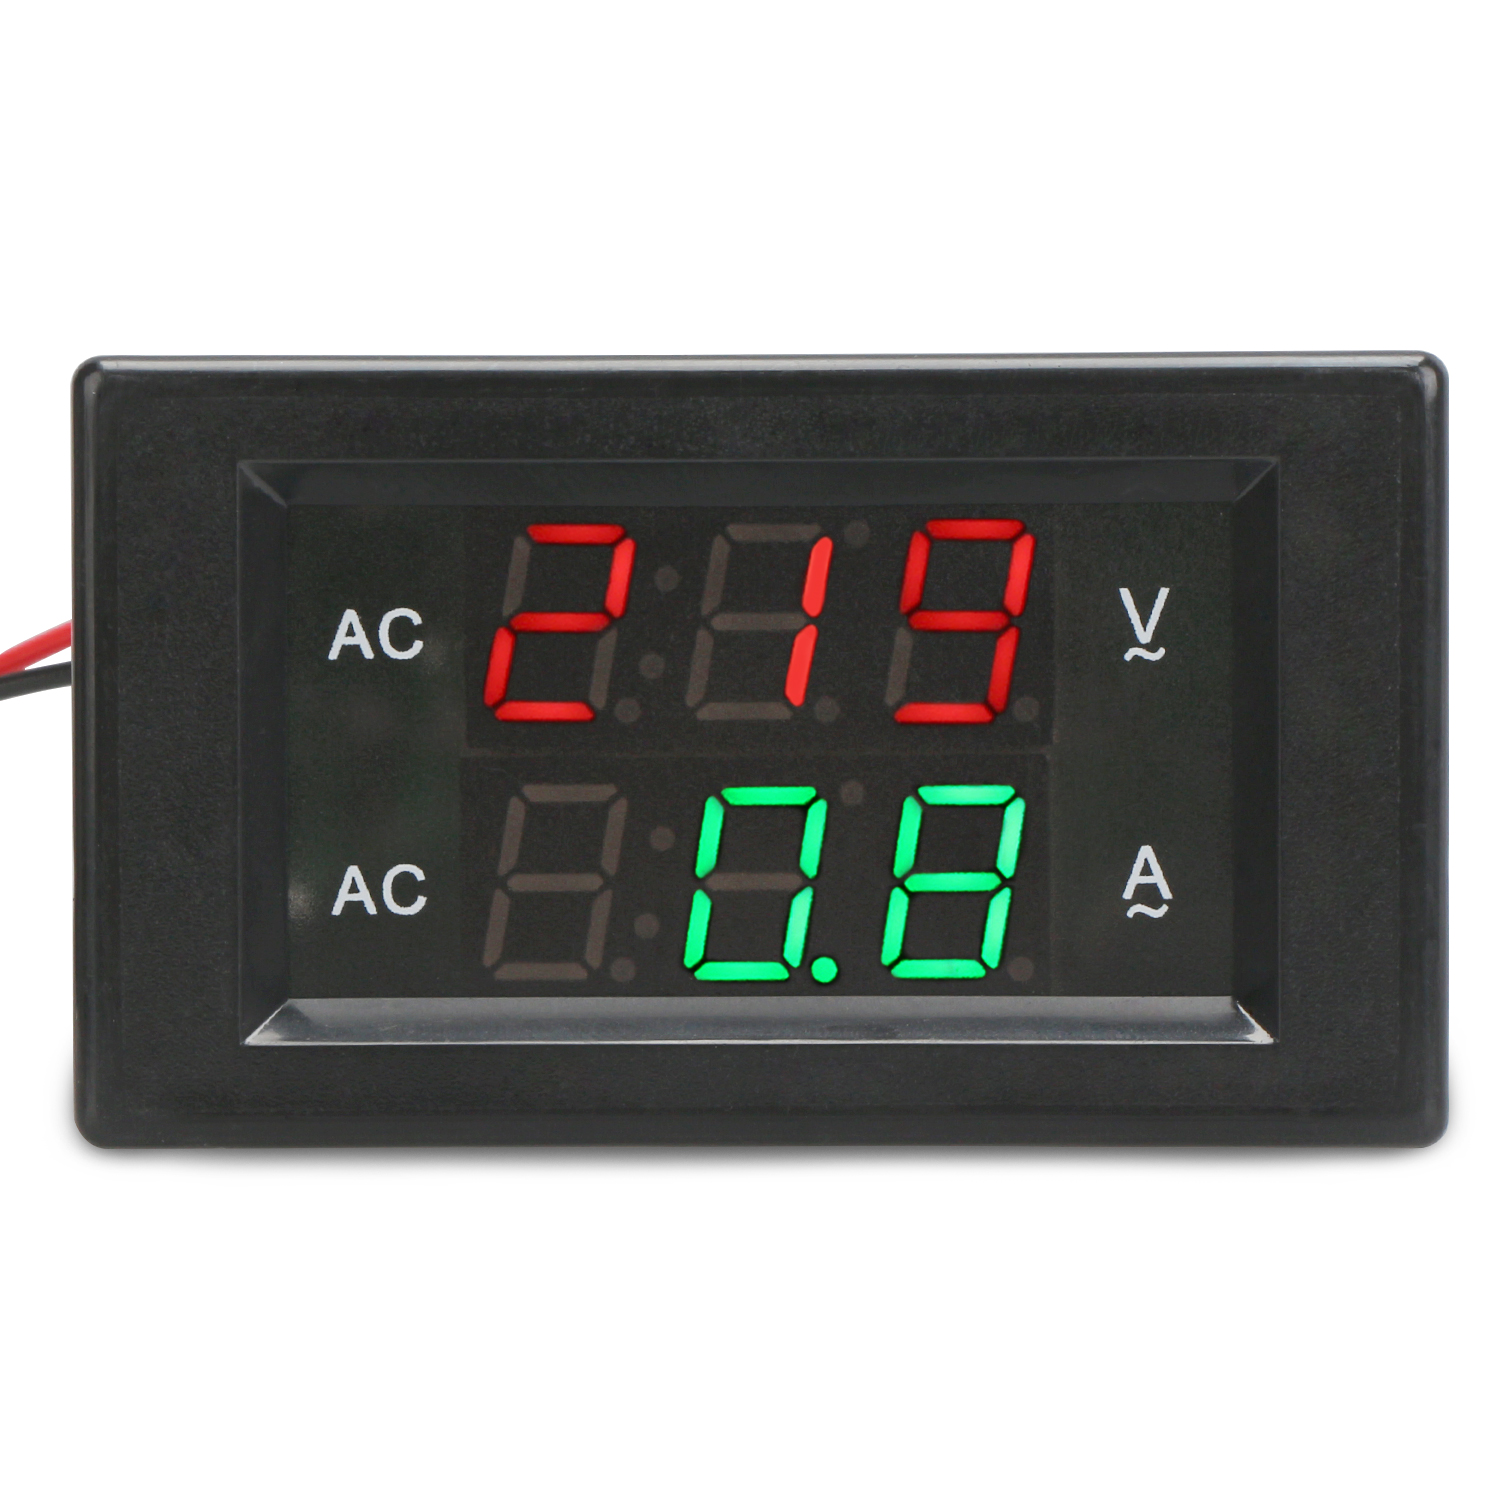 Current Meters The Best Ac Ammeter 50a Include Transformer 50a Ac Current Meter Led Display Red Blue With A Cover Ac Ampere Panel Meter Ac Amperemetre High Quality Materials